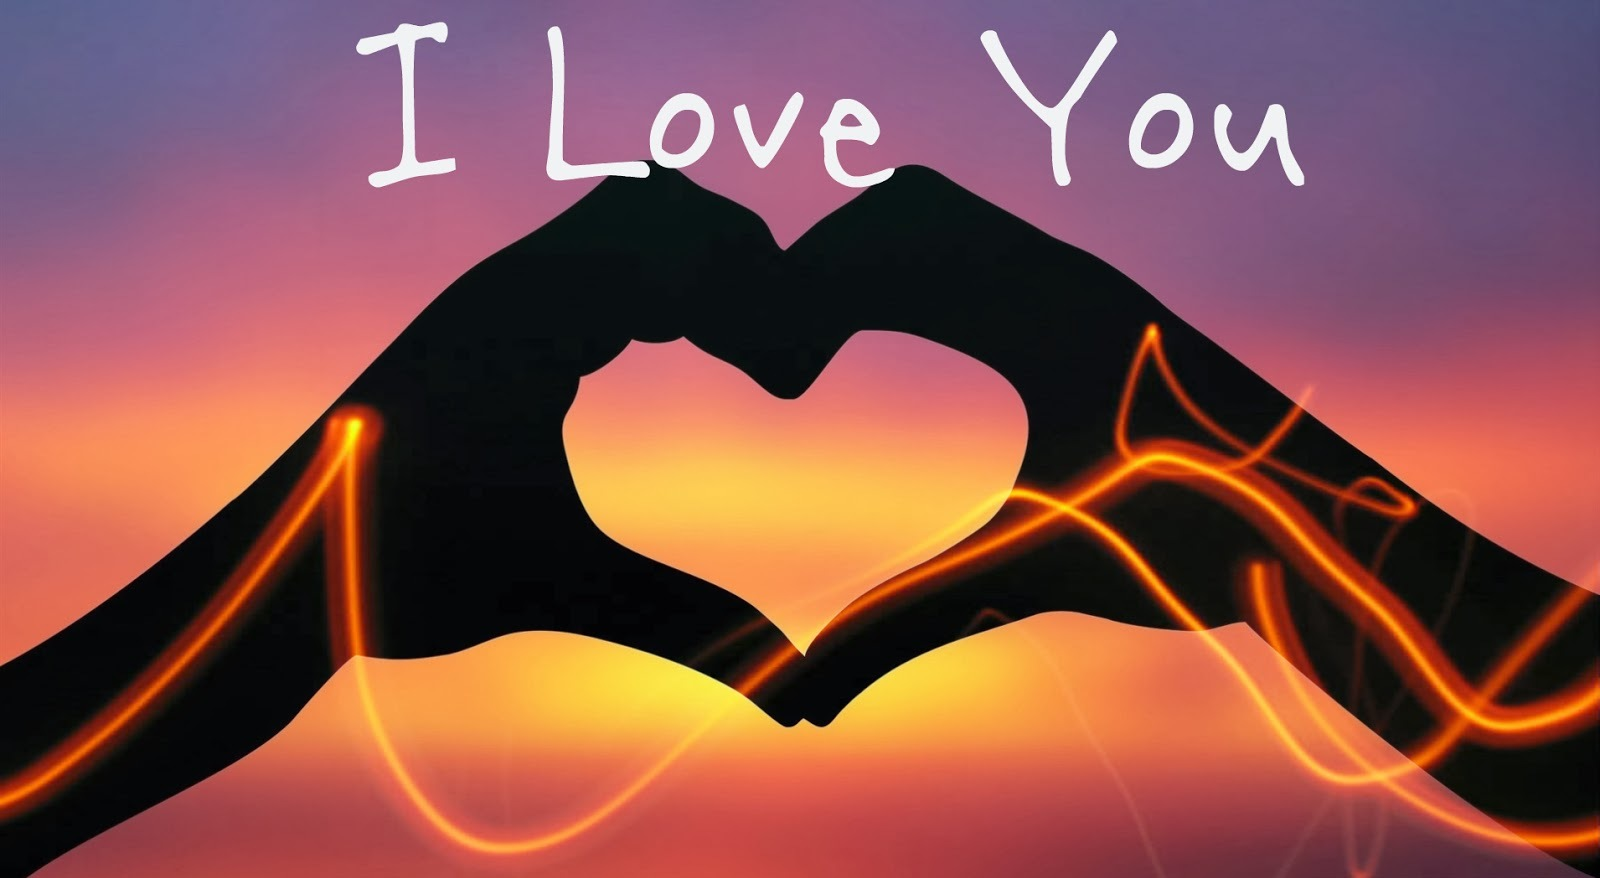 Free Download I Love You Wallpapers Pictures Images 1600x878 For